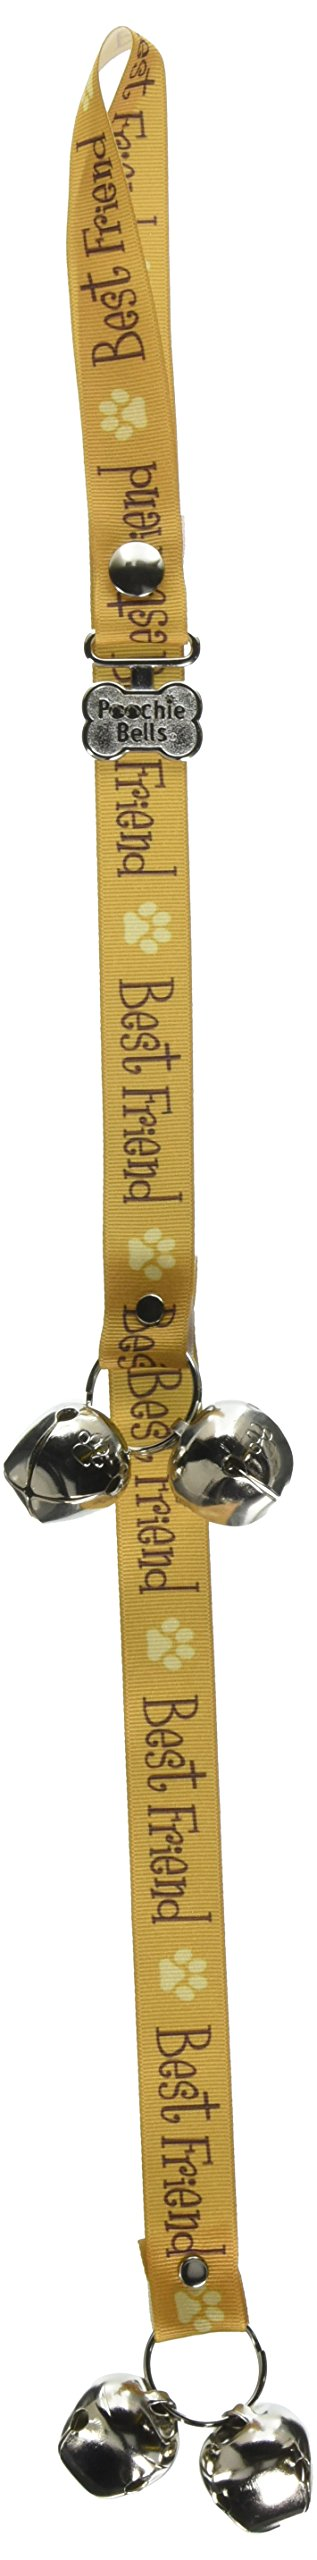 PoochieBells The Original & Trusted Dog Housetraining Doorbell. Potty Dog Bells to Housetrain & Communicate With Your Dog : Handcrafted in USA Since 2005 : Endorsed by Pet Industry Professionals : Easy 95% Success Rate: Potty Training Instructions Include